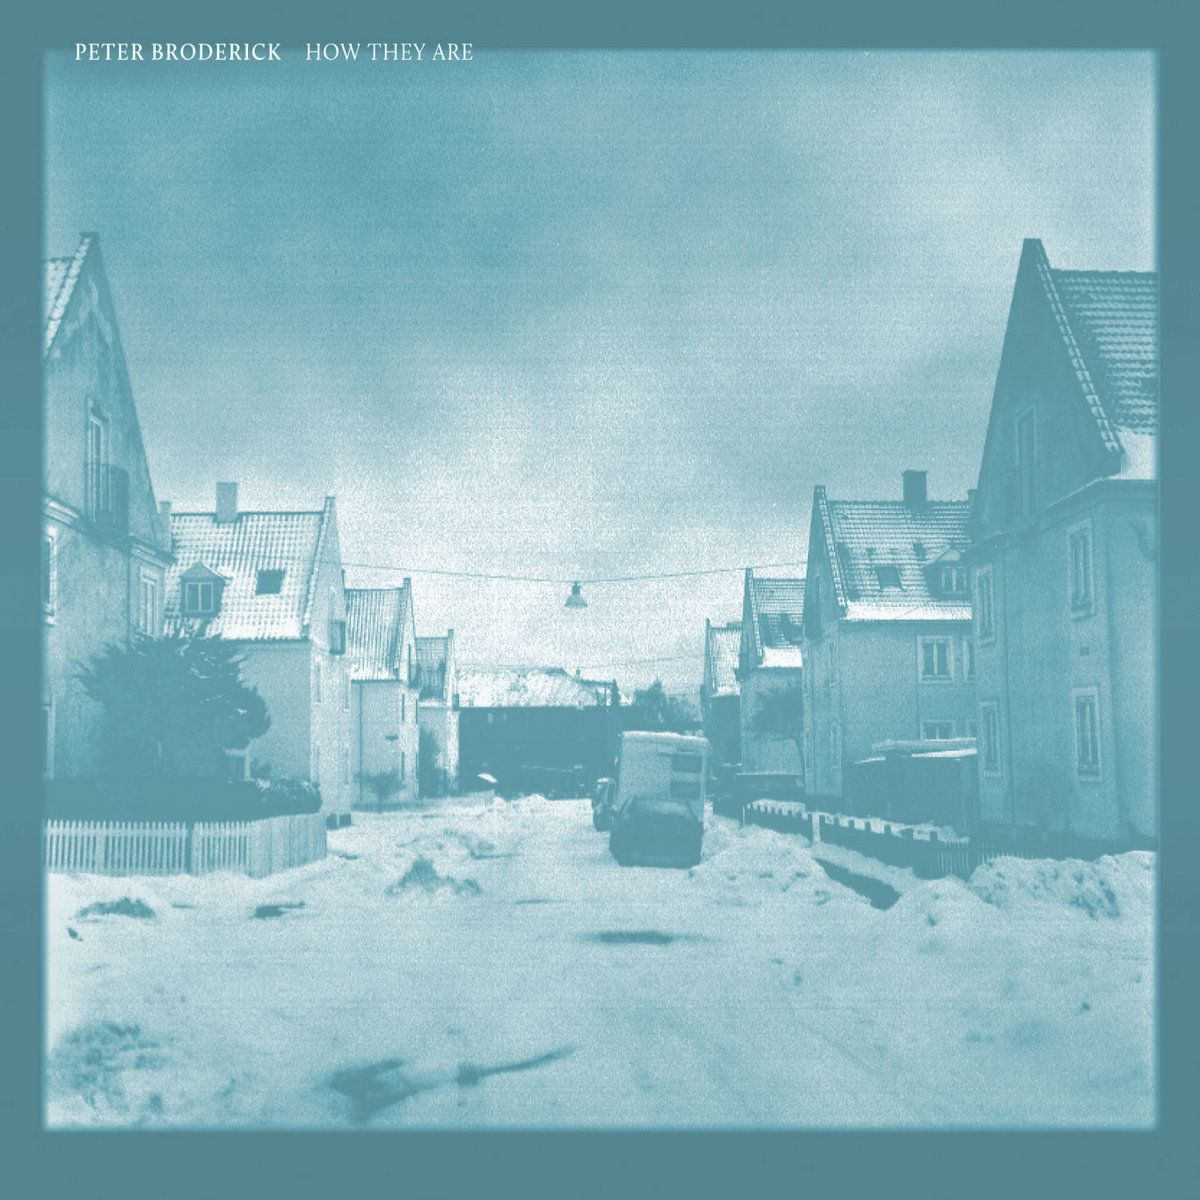 Peter Broderick - How they are